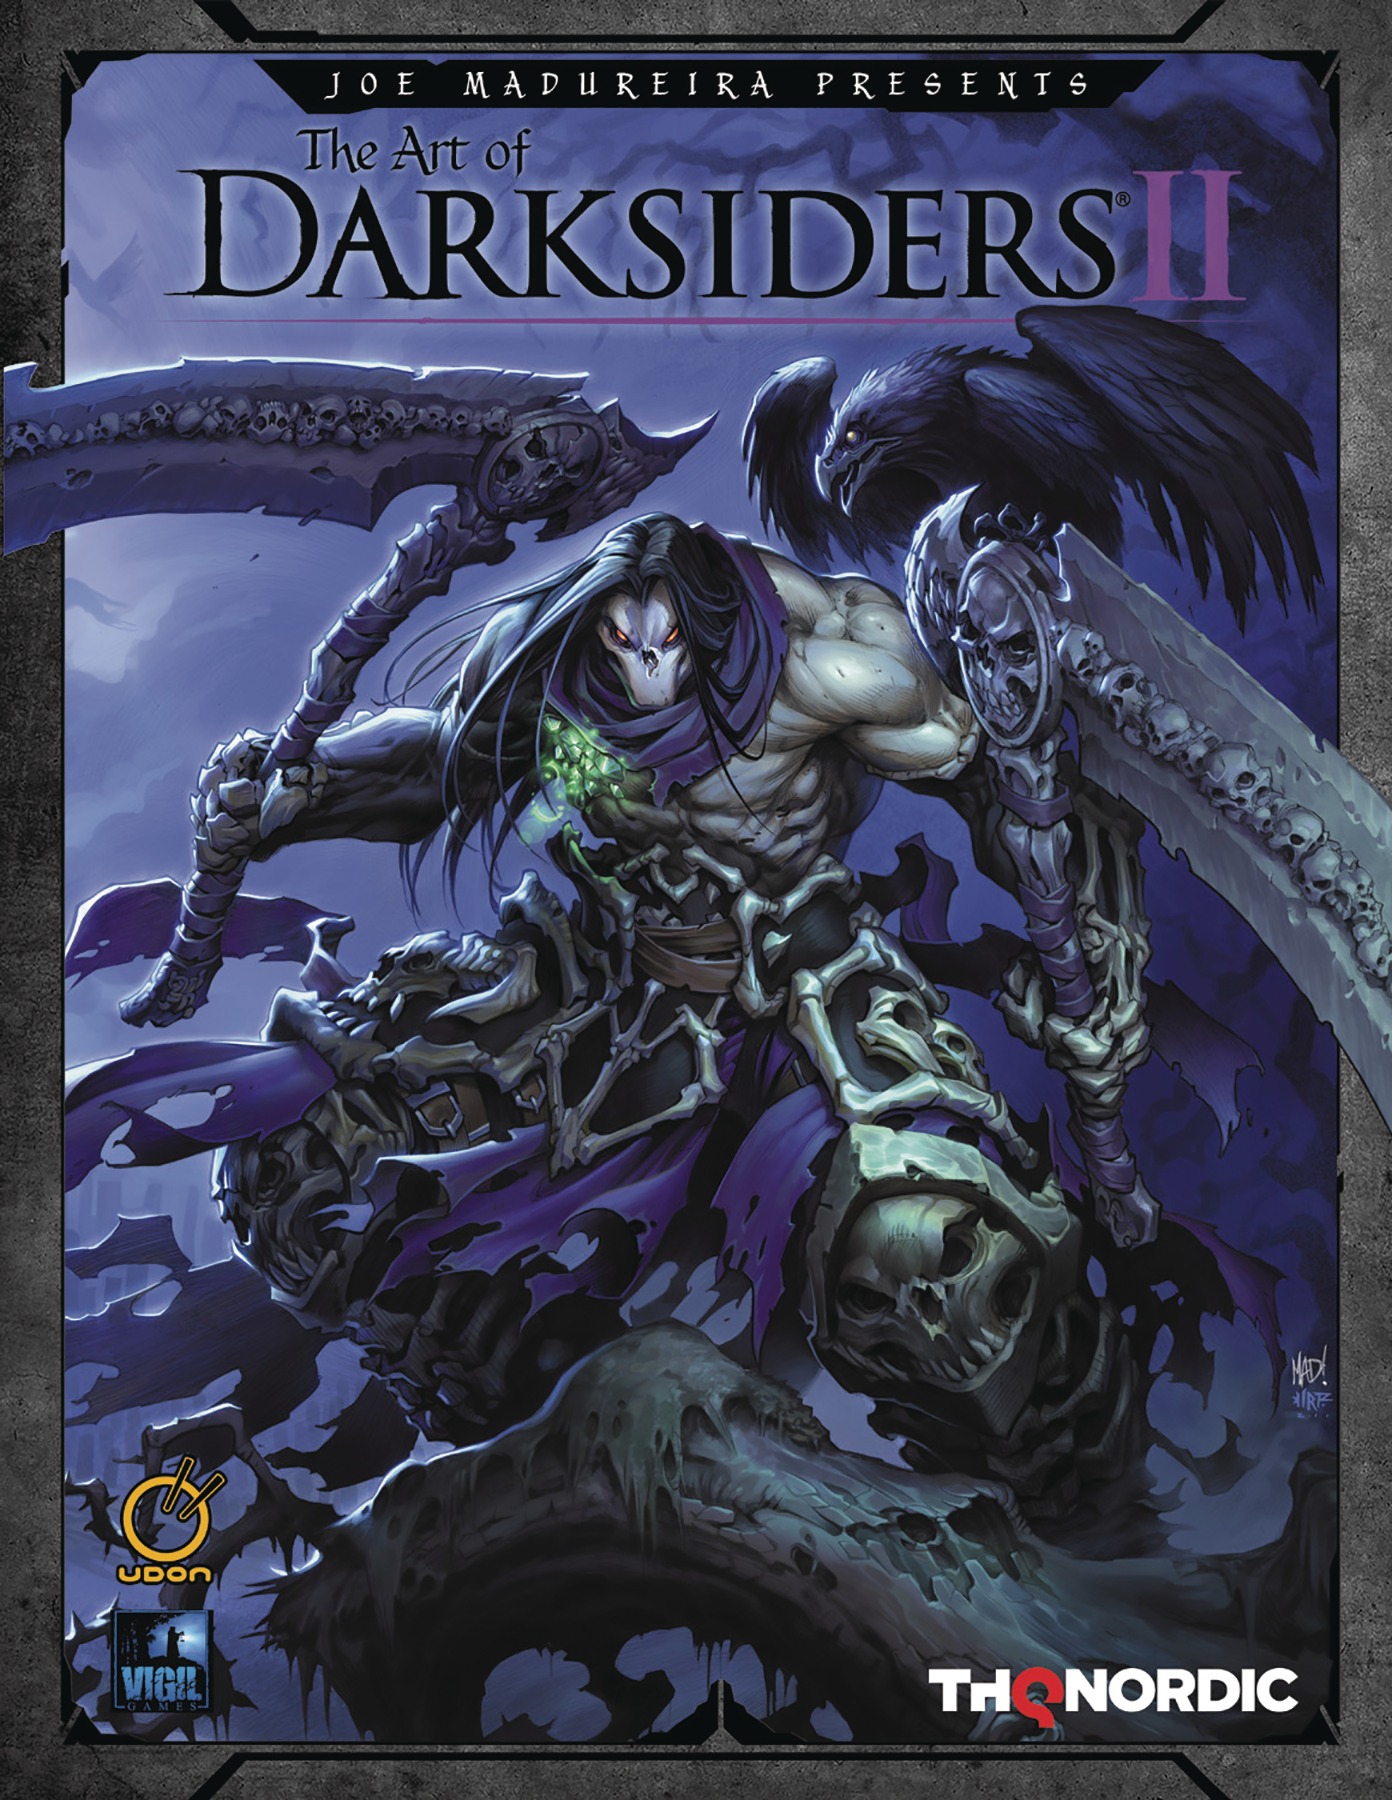 ART OF DARKSIDERS II HC (O/A)